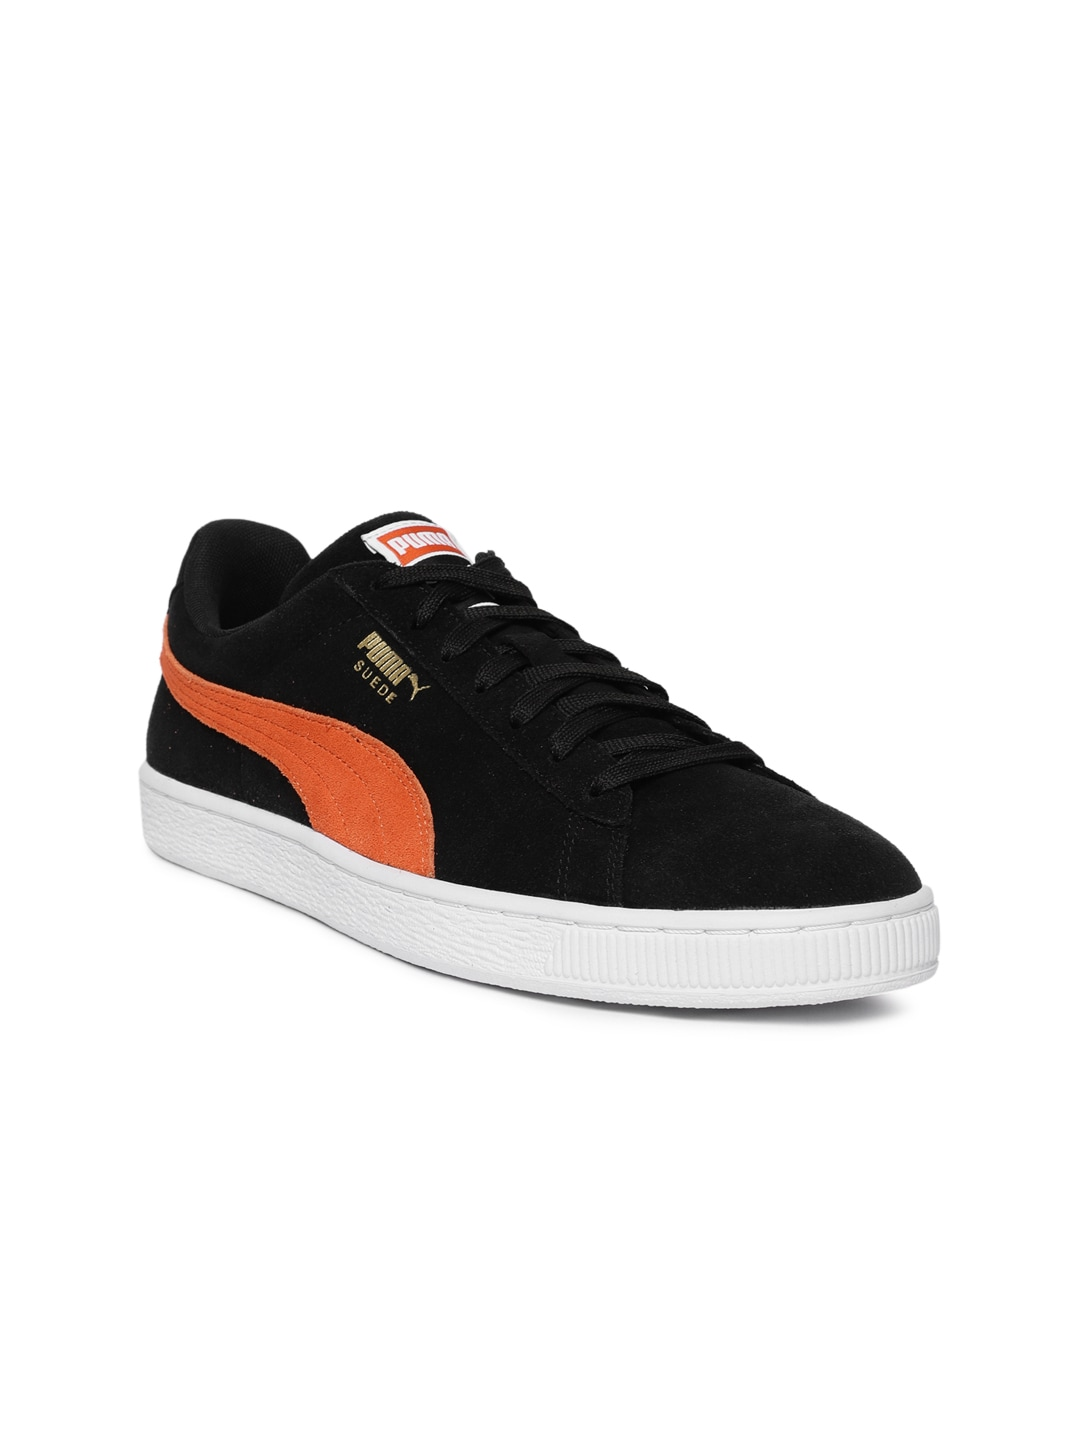 Suede Footwear in Puma Suede Footwear online Buy Puma India qMVpSUzG